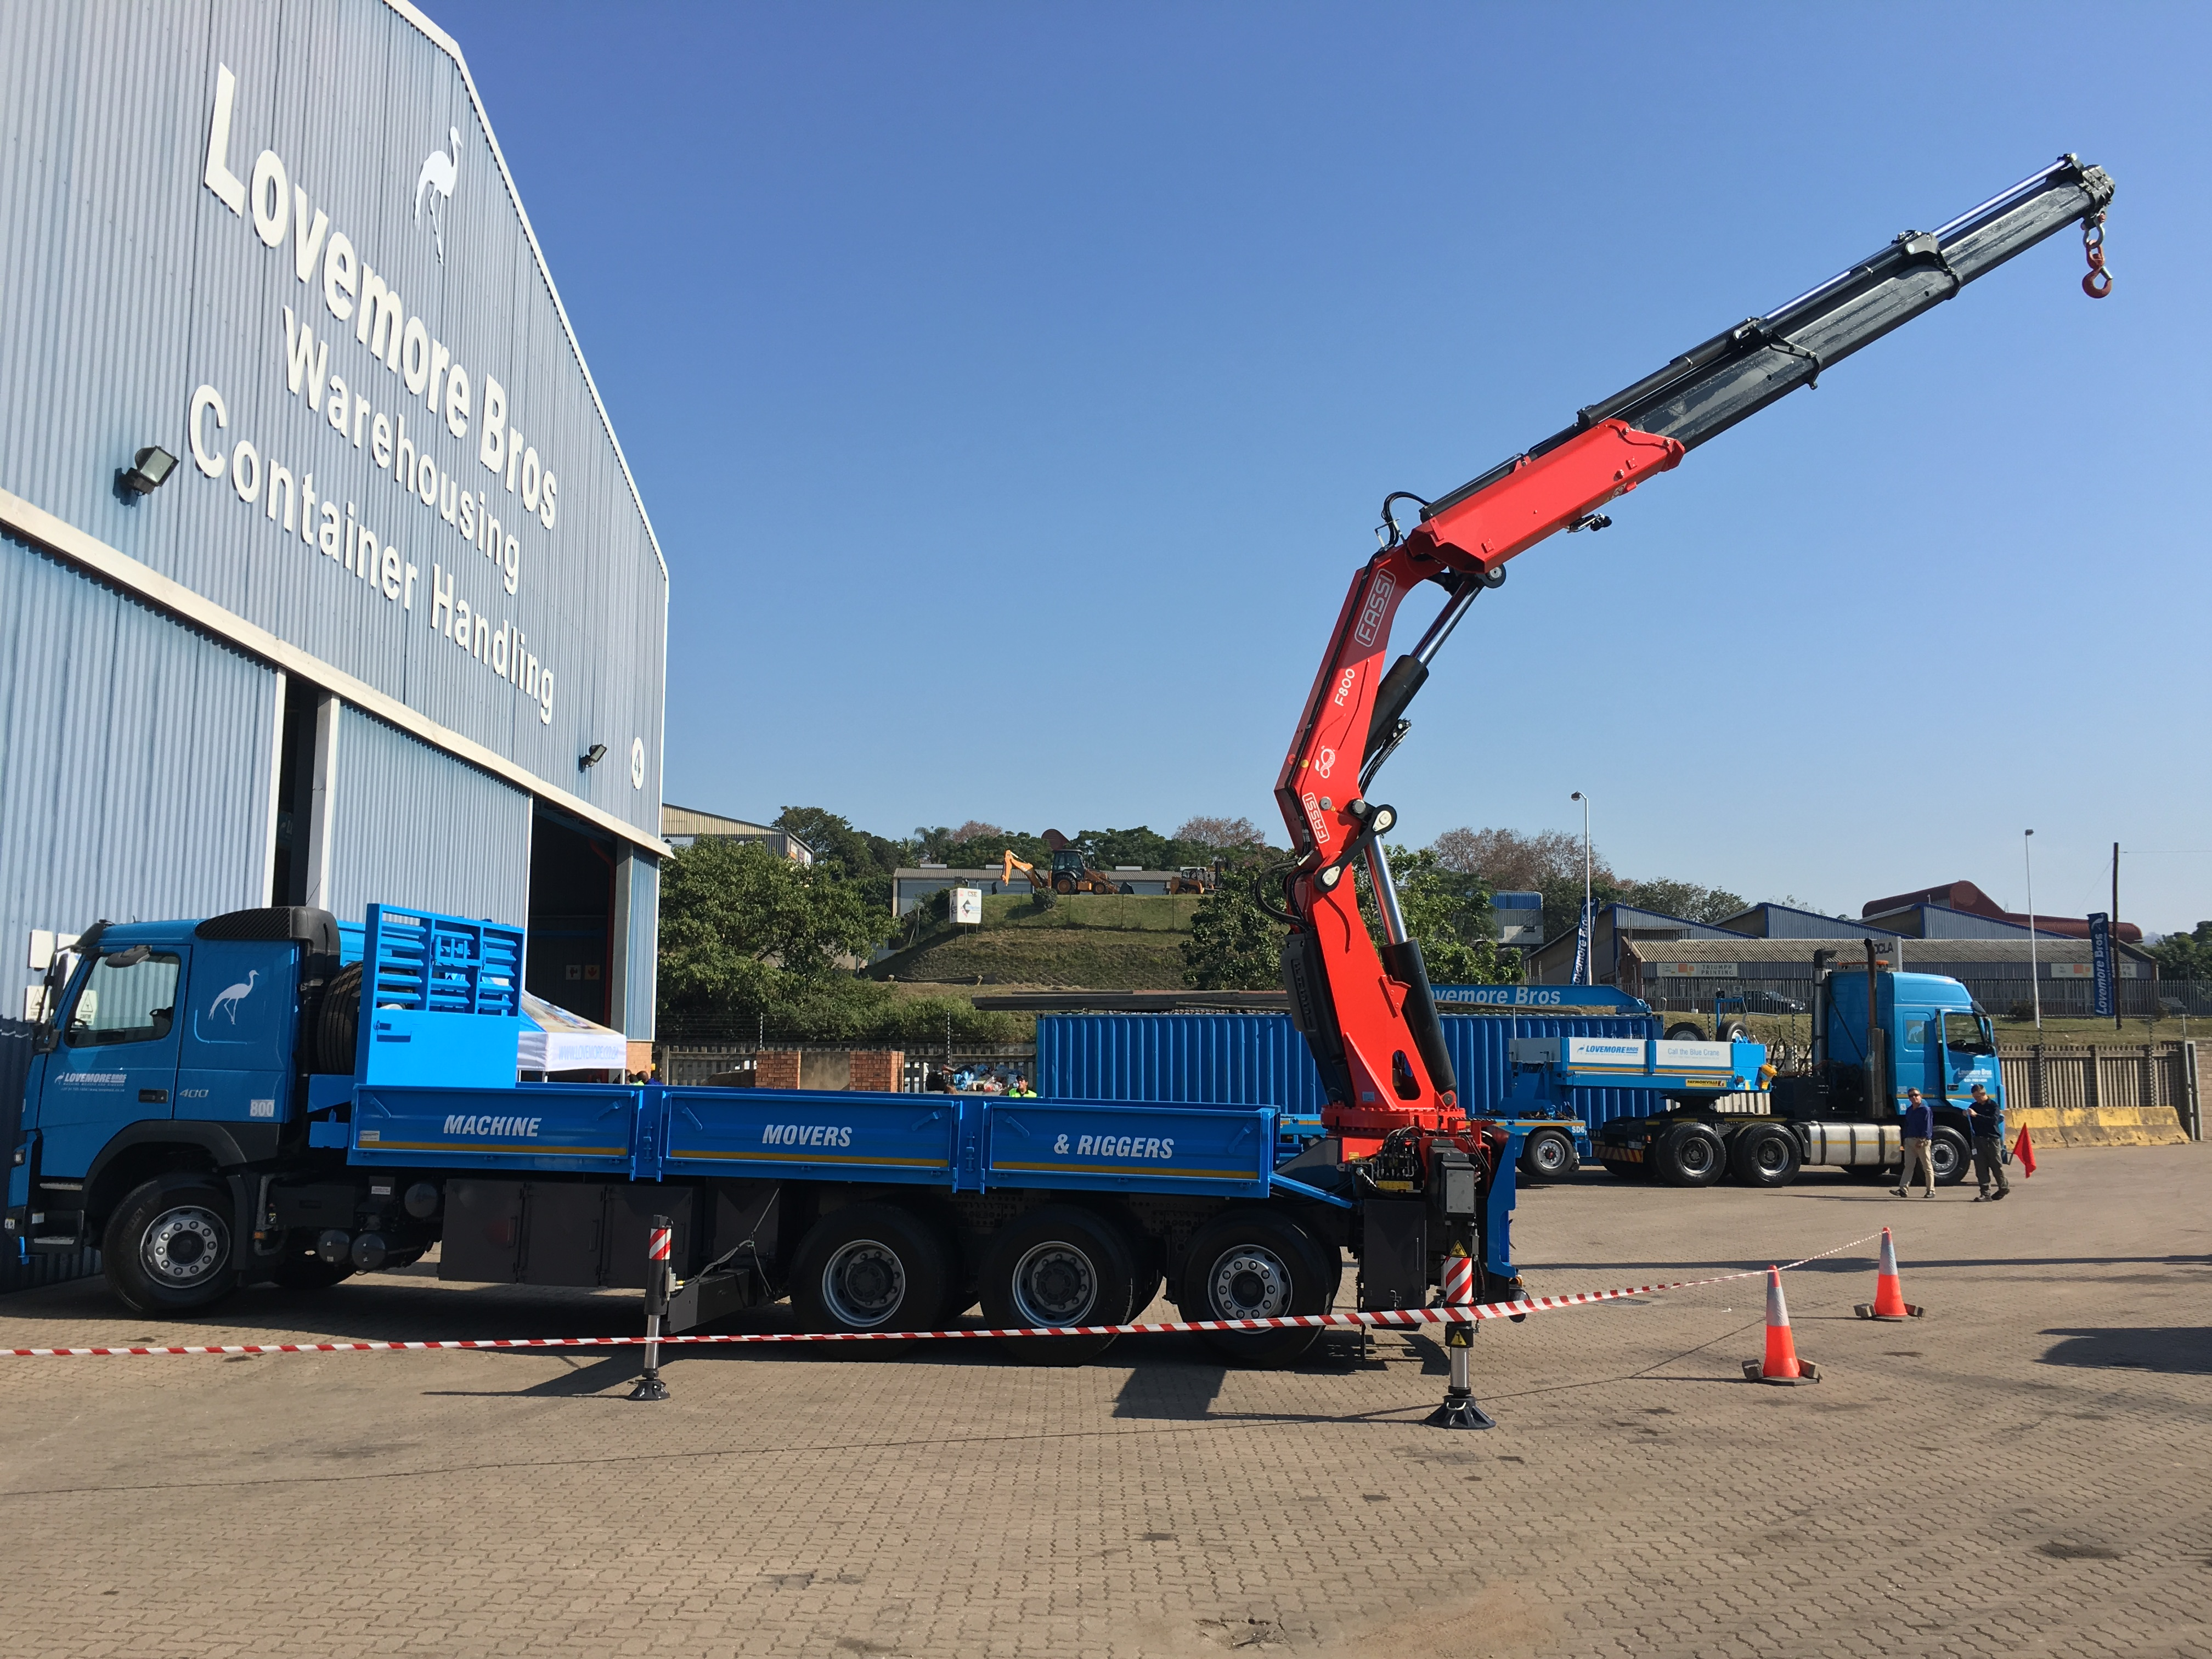 600SA TO DELIVER FIRST FASSI CRANE WITH FITTED NIGHT WORK LIGHTS